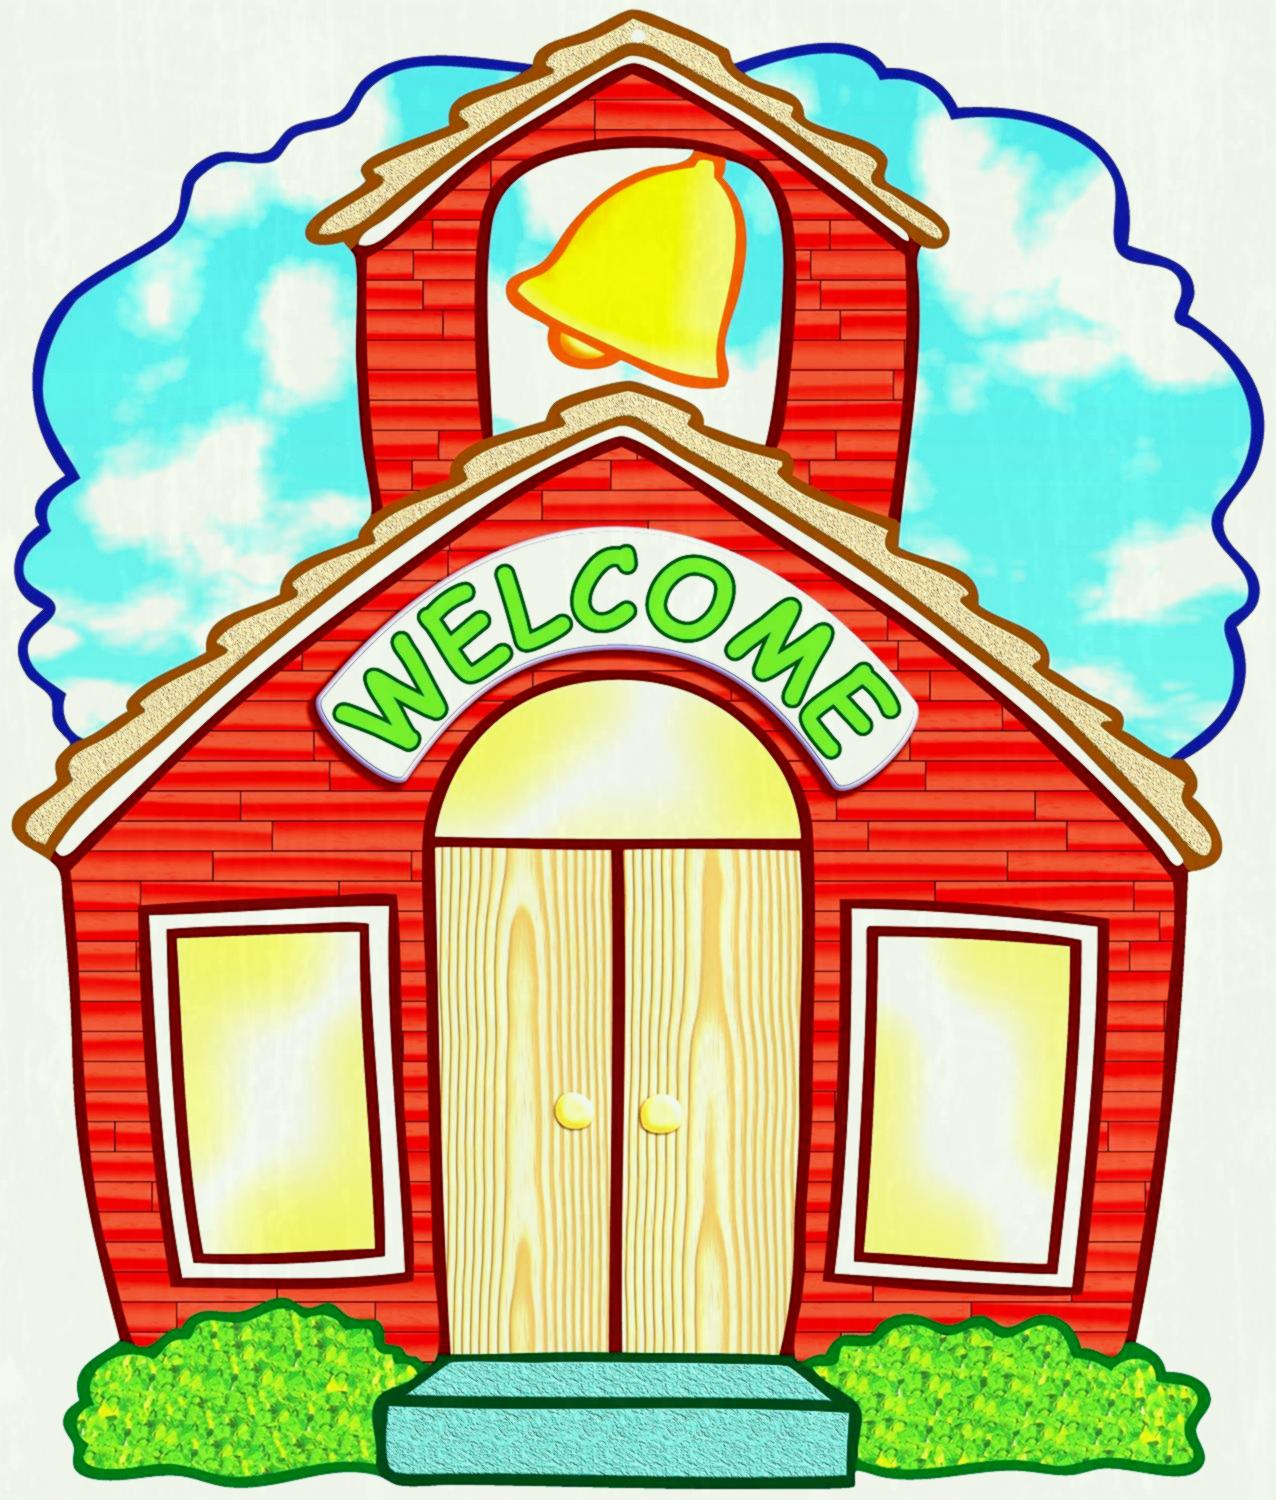 school house clipart at getdrawings com free for personal use rh getdrawings com schoolhouse clipart black and white school house clip art pictures